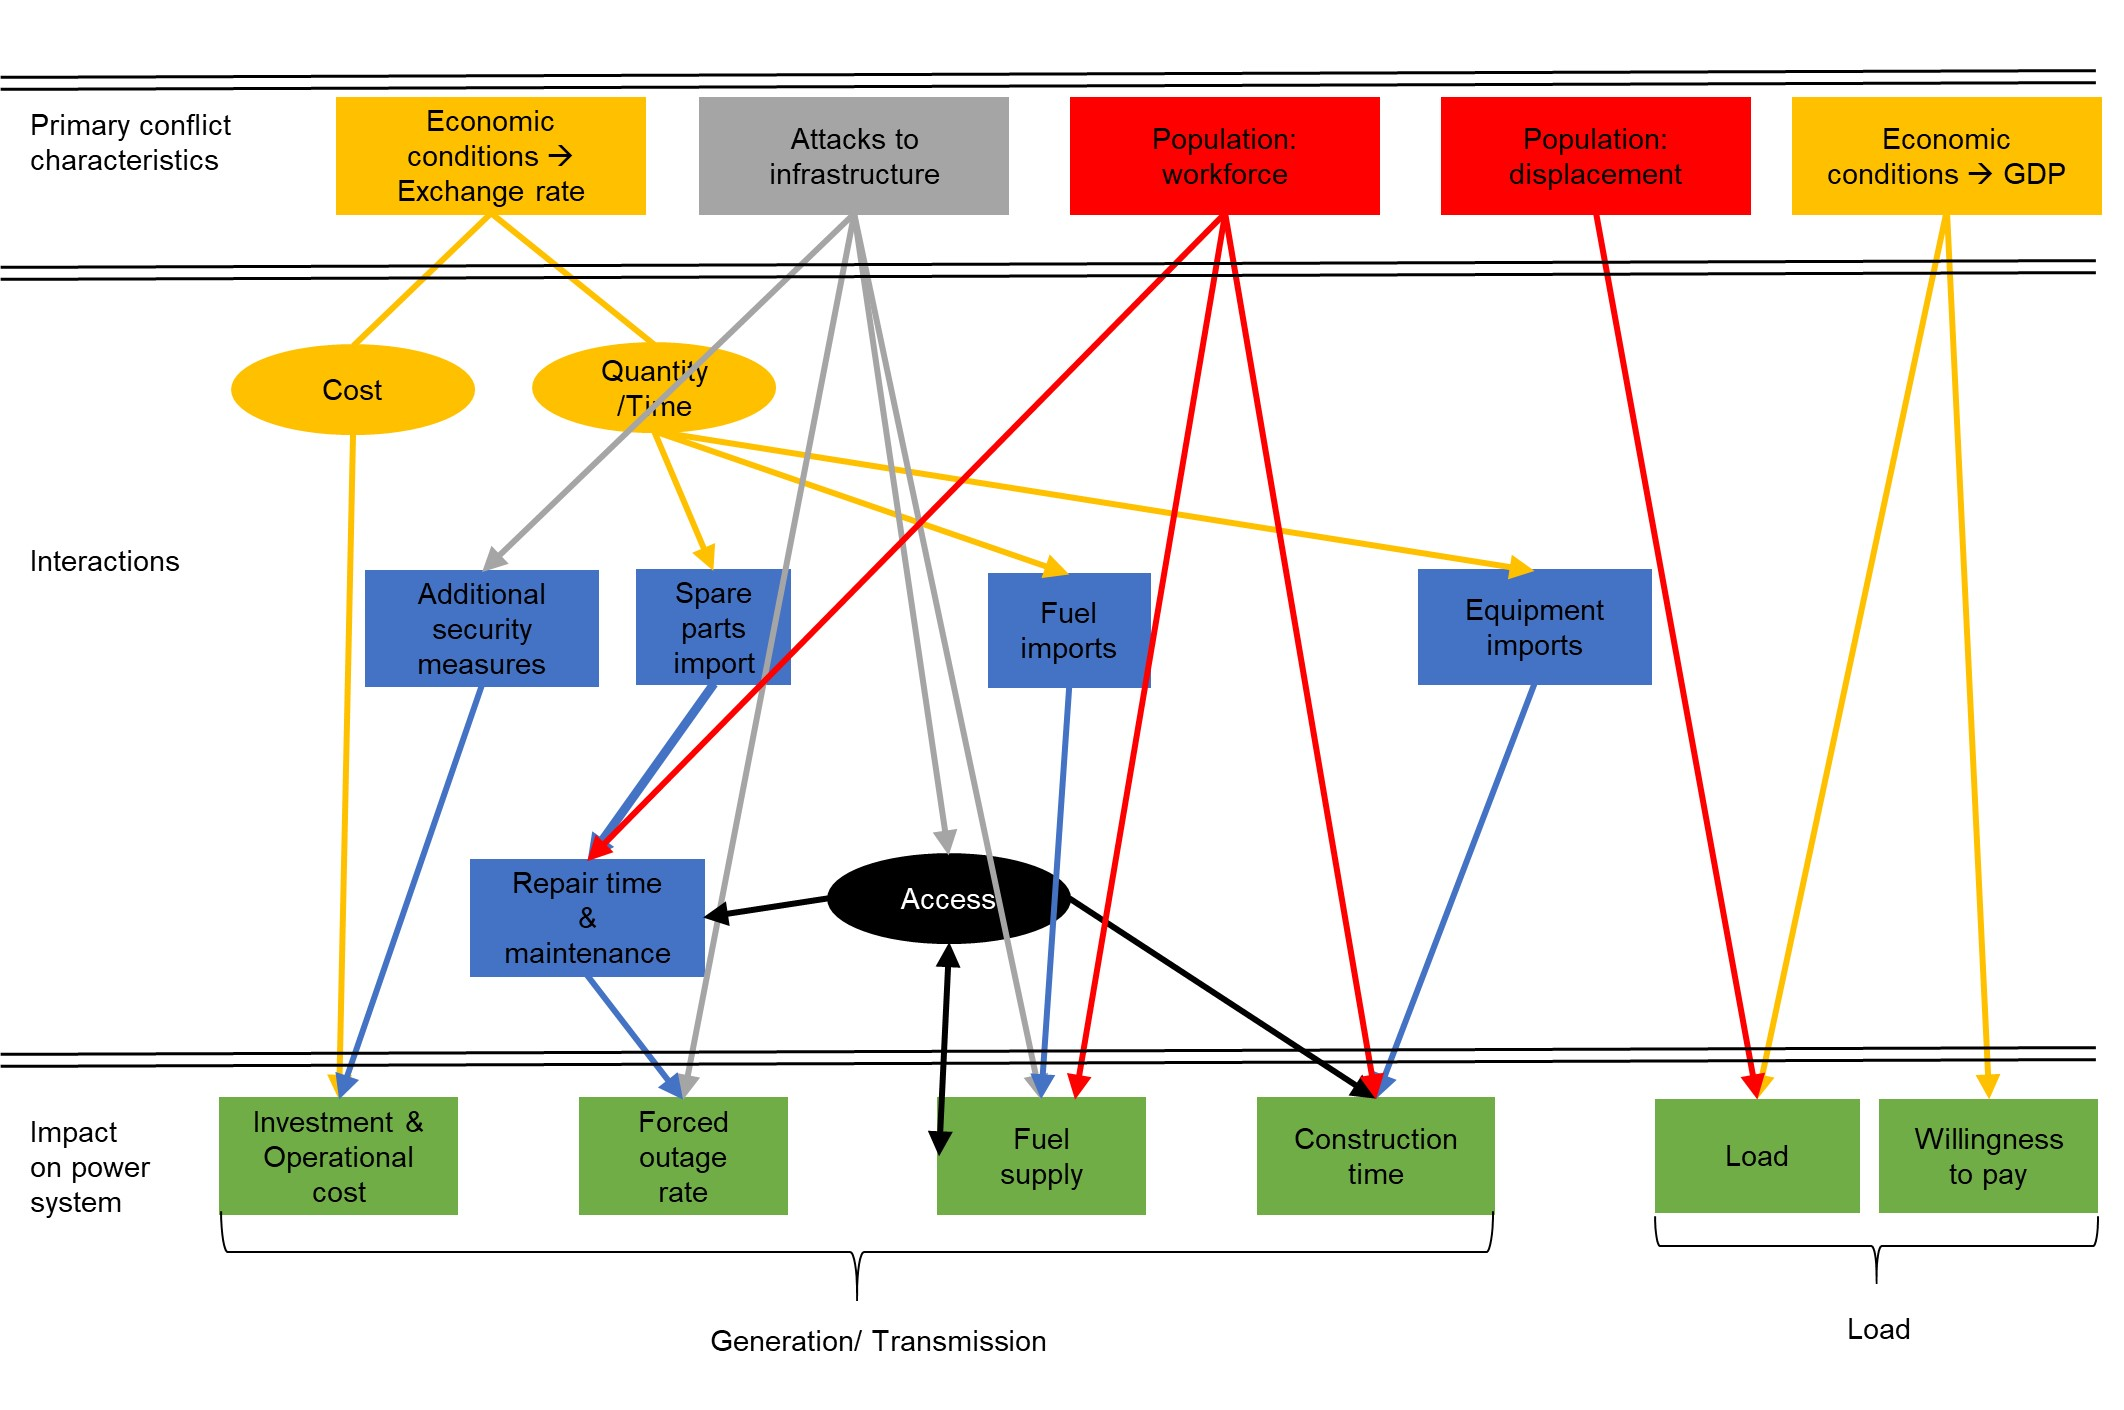 Schematic describing conflict's effects on power system.